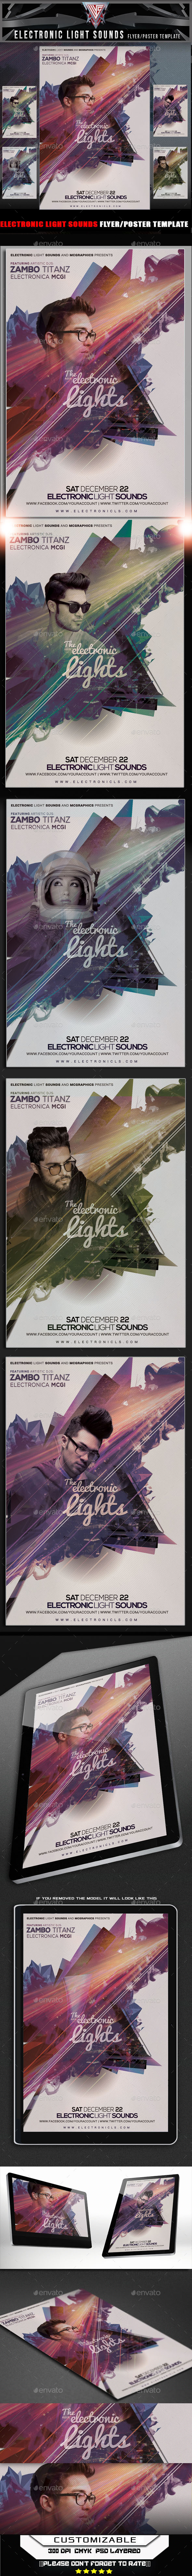 Electronic Lights Flyer Template - Flyers Print Templates